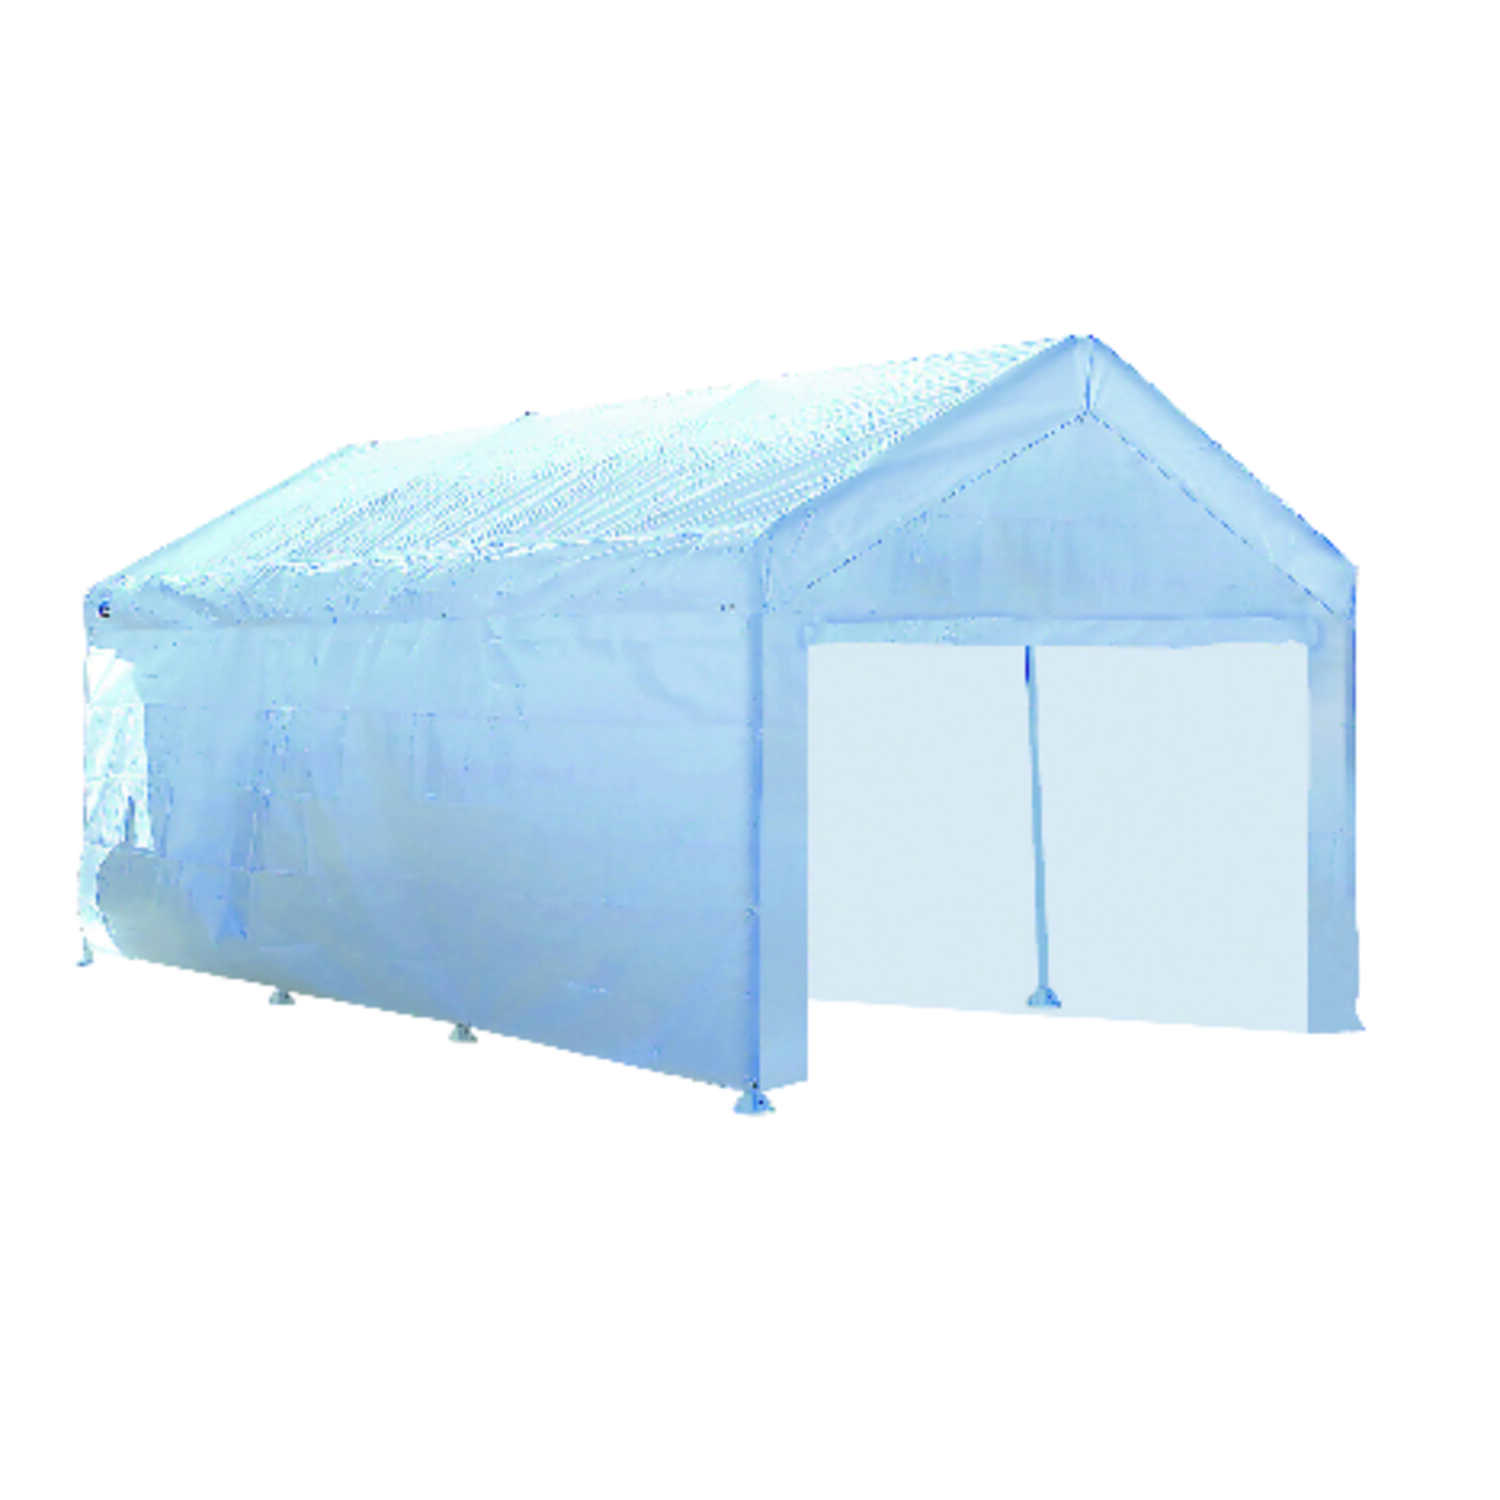 Quik Shade  Moto Shade  Polyethylene  Carport Canopy Wall Panels Kit  10 ft. W x 20 ft. L